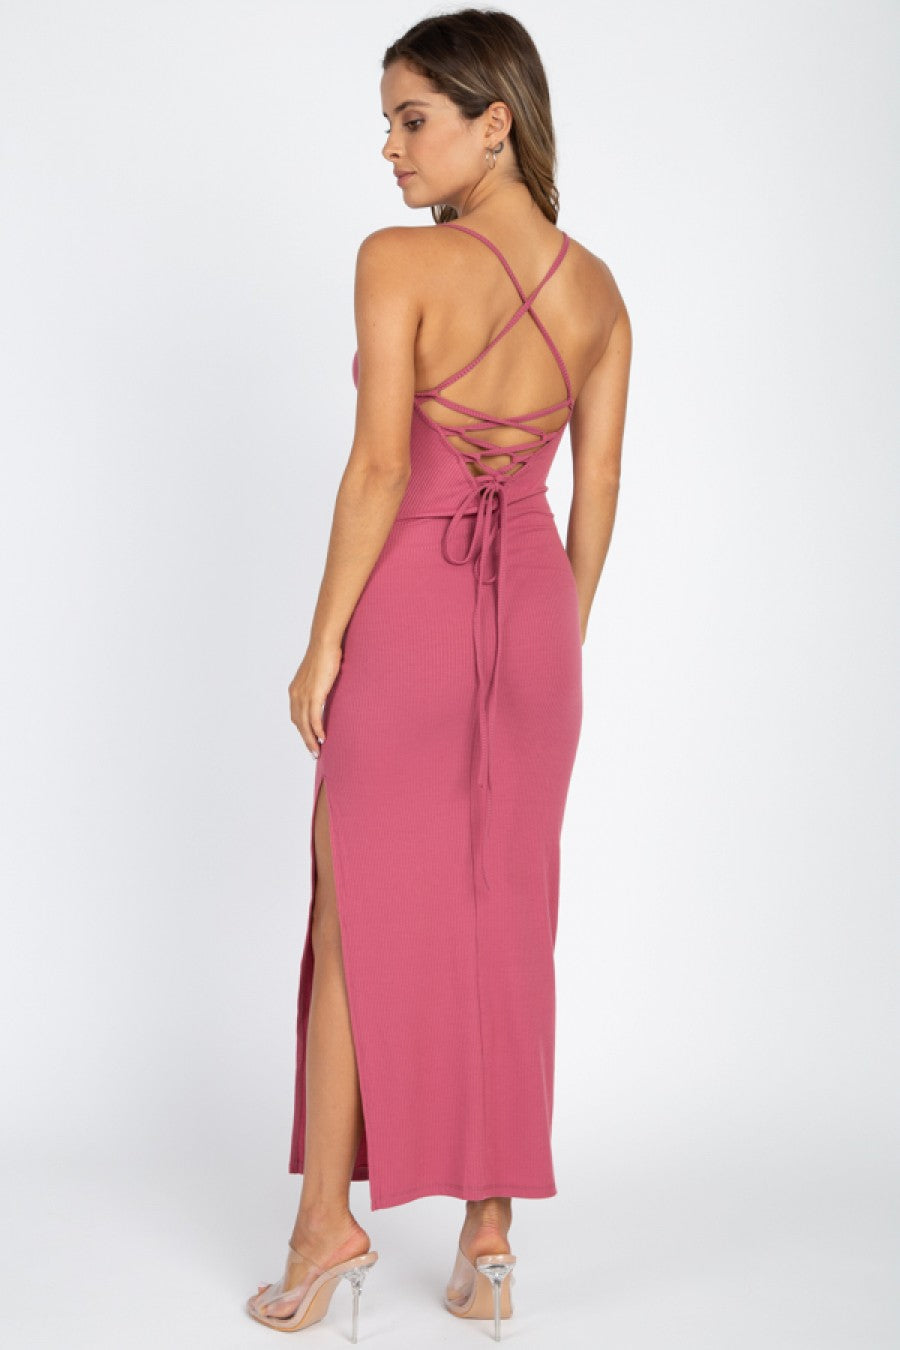 Load image into Gallery viewer, Soon As I Get Home Dress - Mauve - Amor Black Boutique